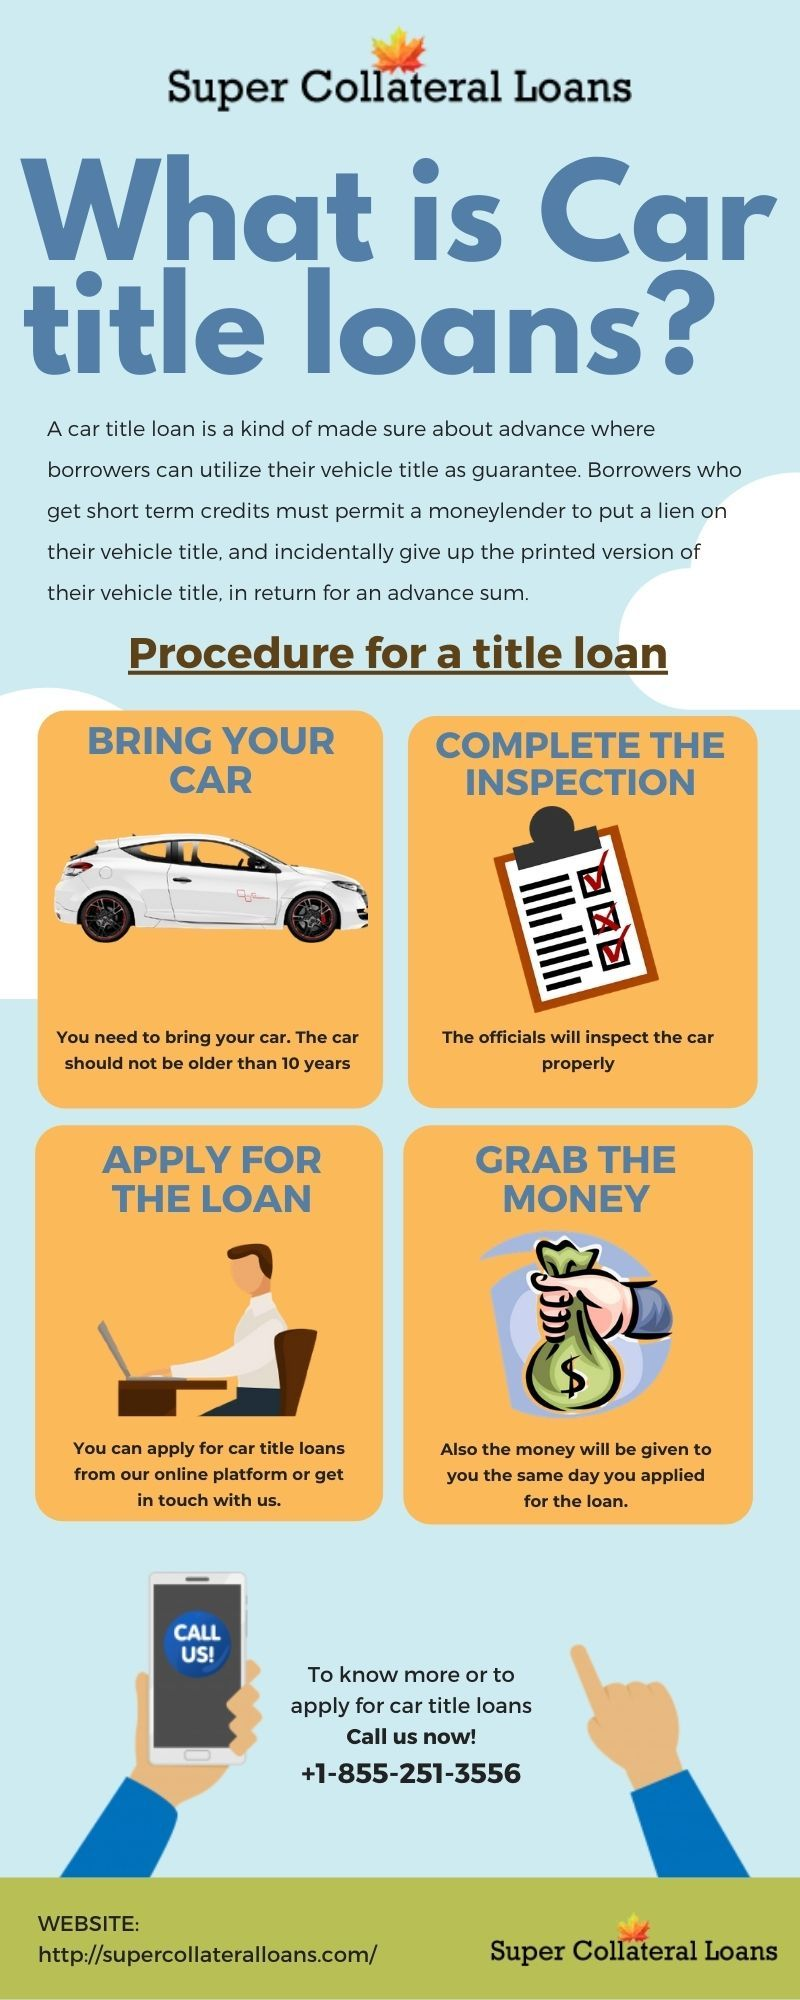 Know About The Car Collateral Loans In Nanaimo In 2020 Collateral Loans Car Title Nanaimo